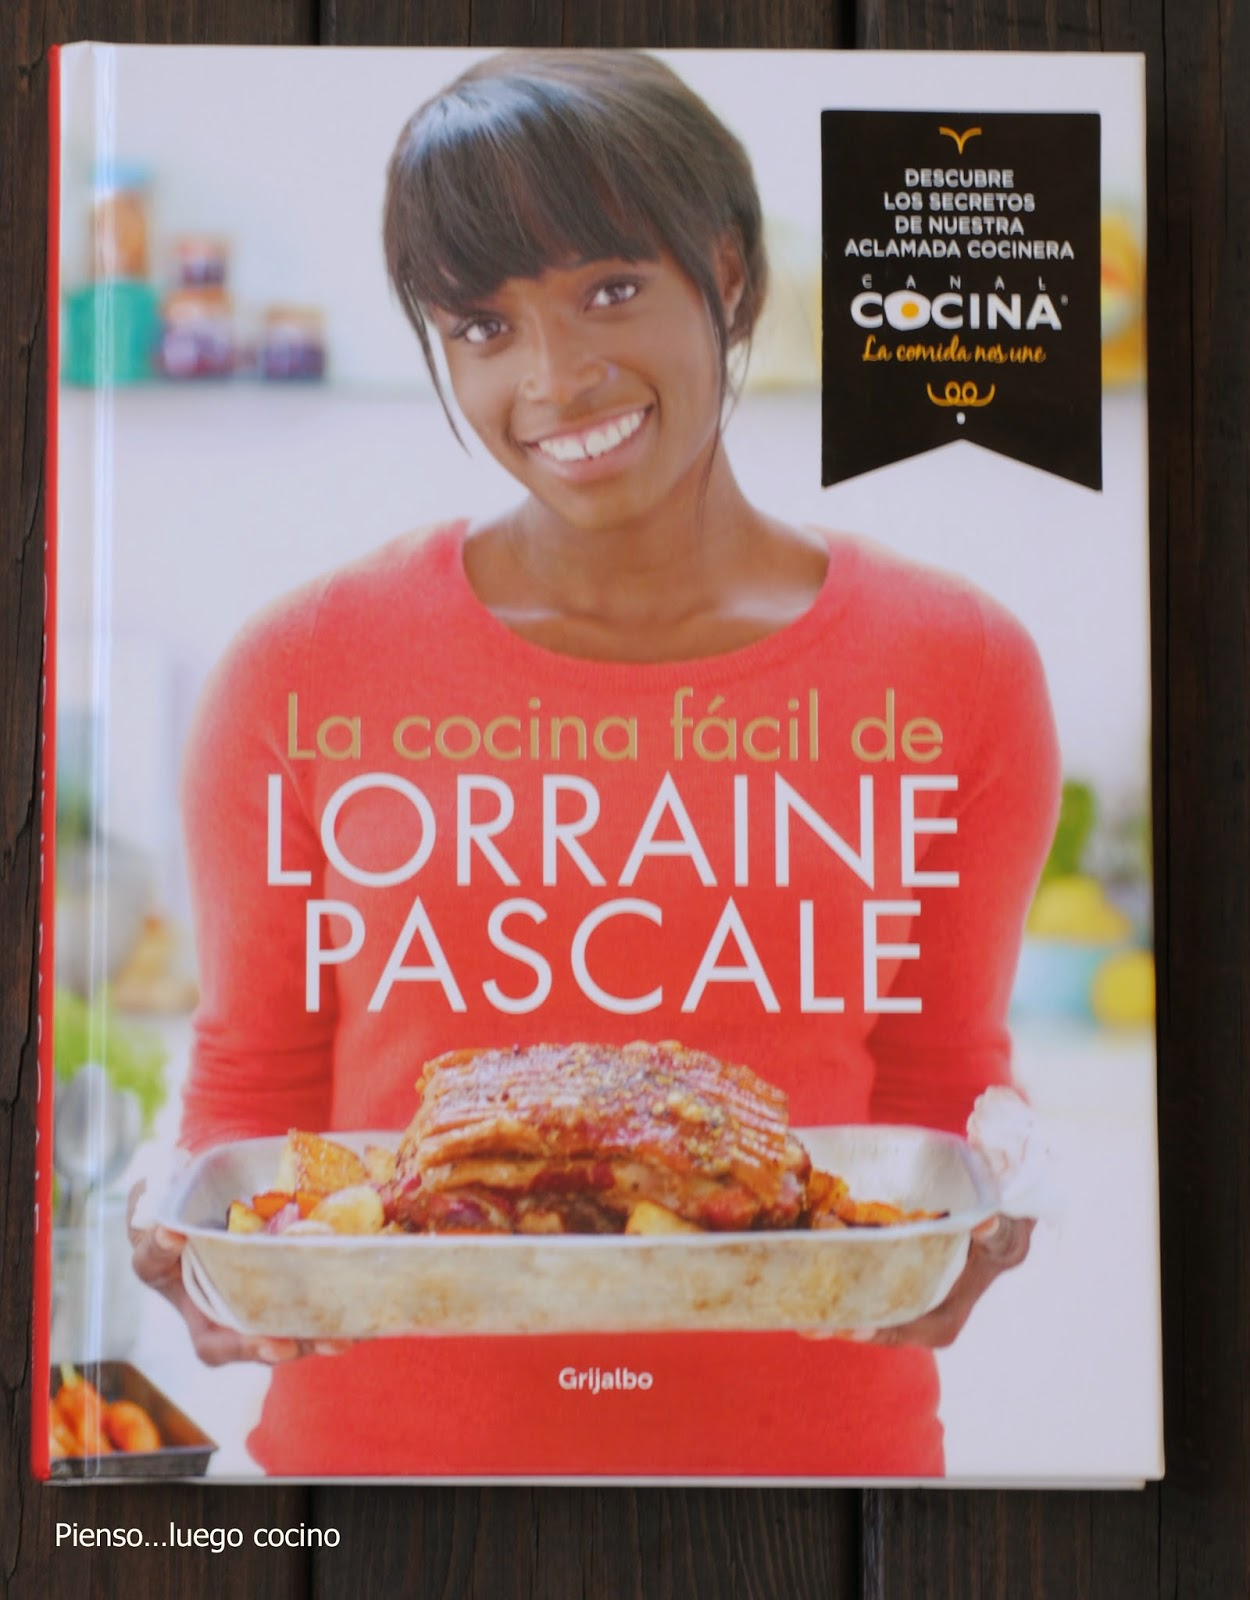 Canal Cocina Lorraine Pascale Pienso Luego Cocino La Cocina Fácil De Lorraine Pascale